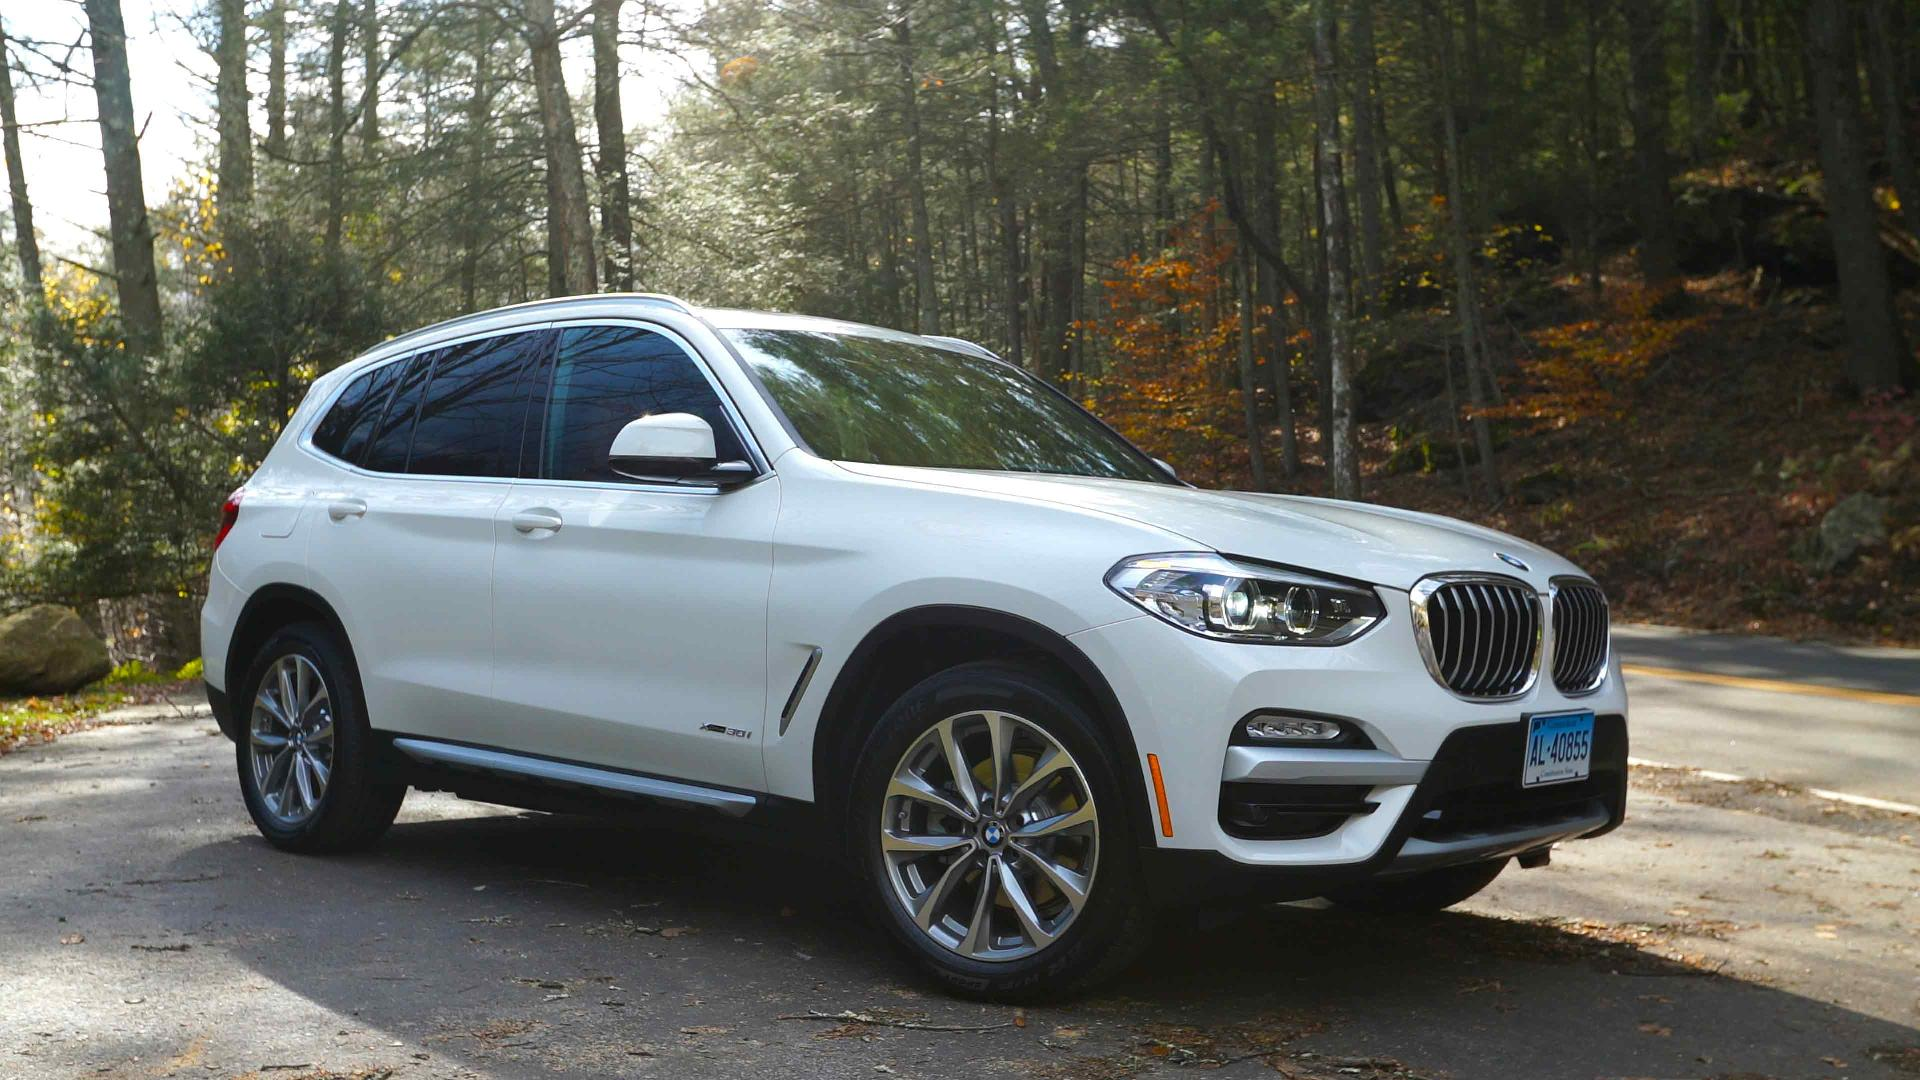 Luxury Suvs Vehicle: 2018 BMW X3 May Be Among The Best Luxury Compact SUVs